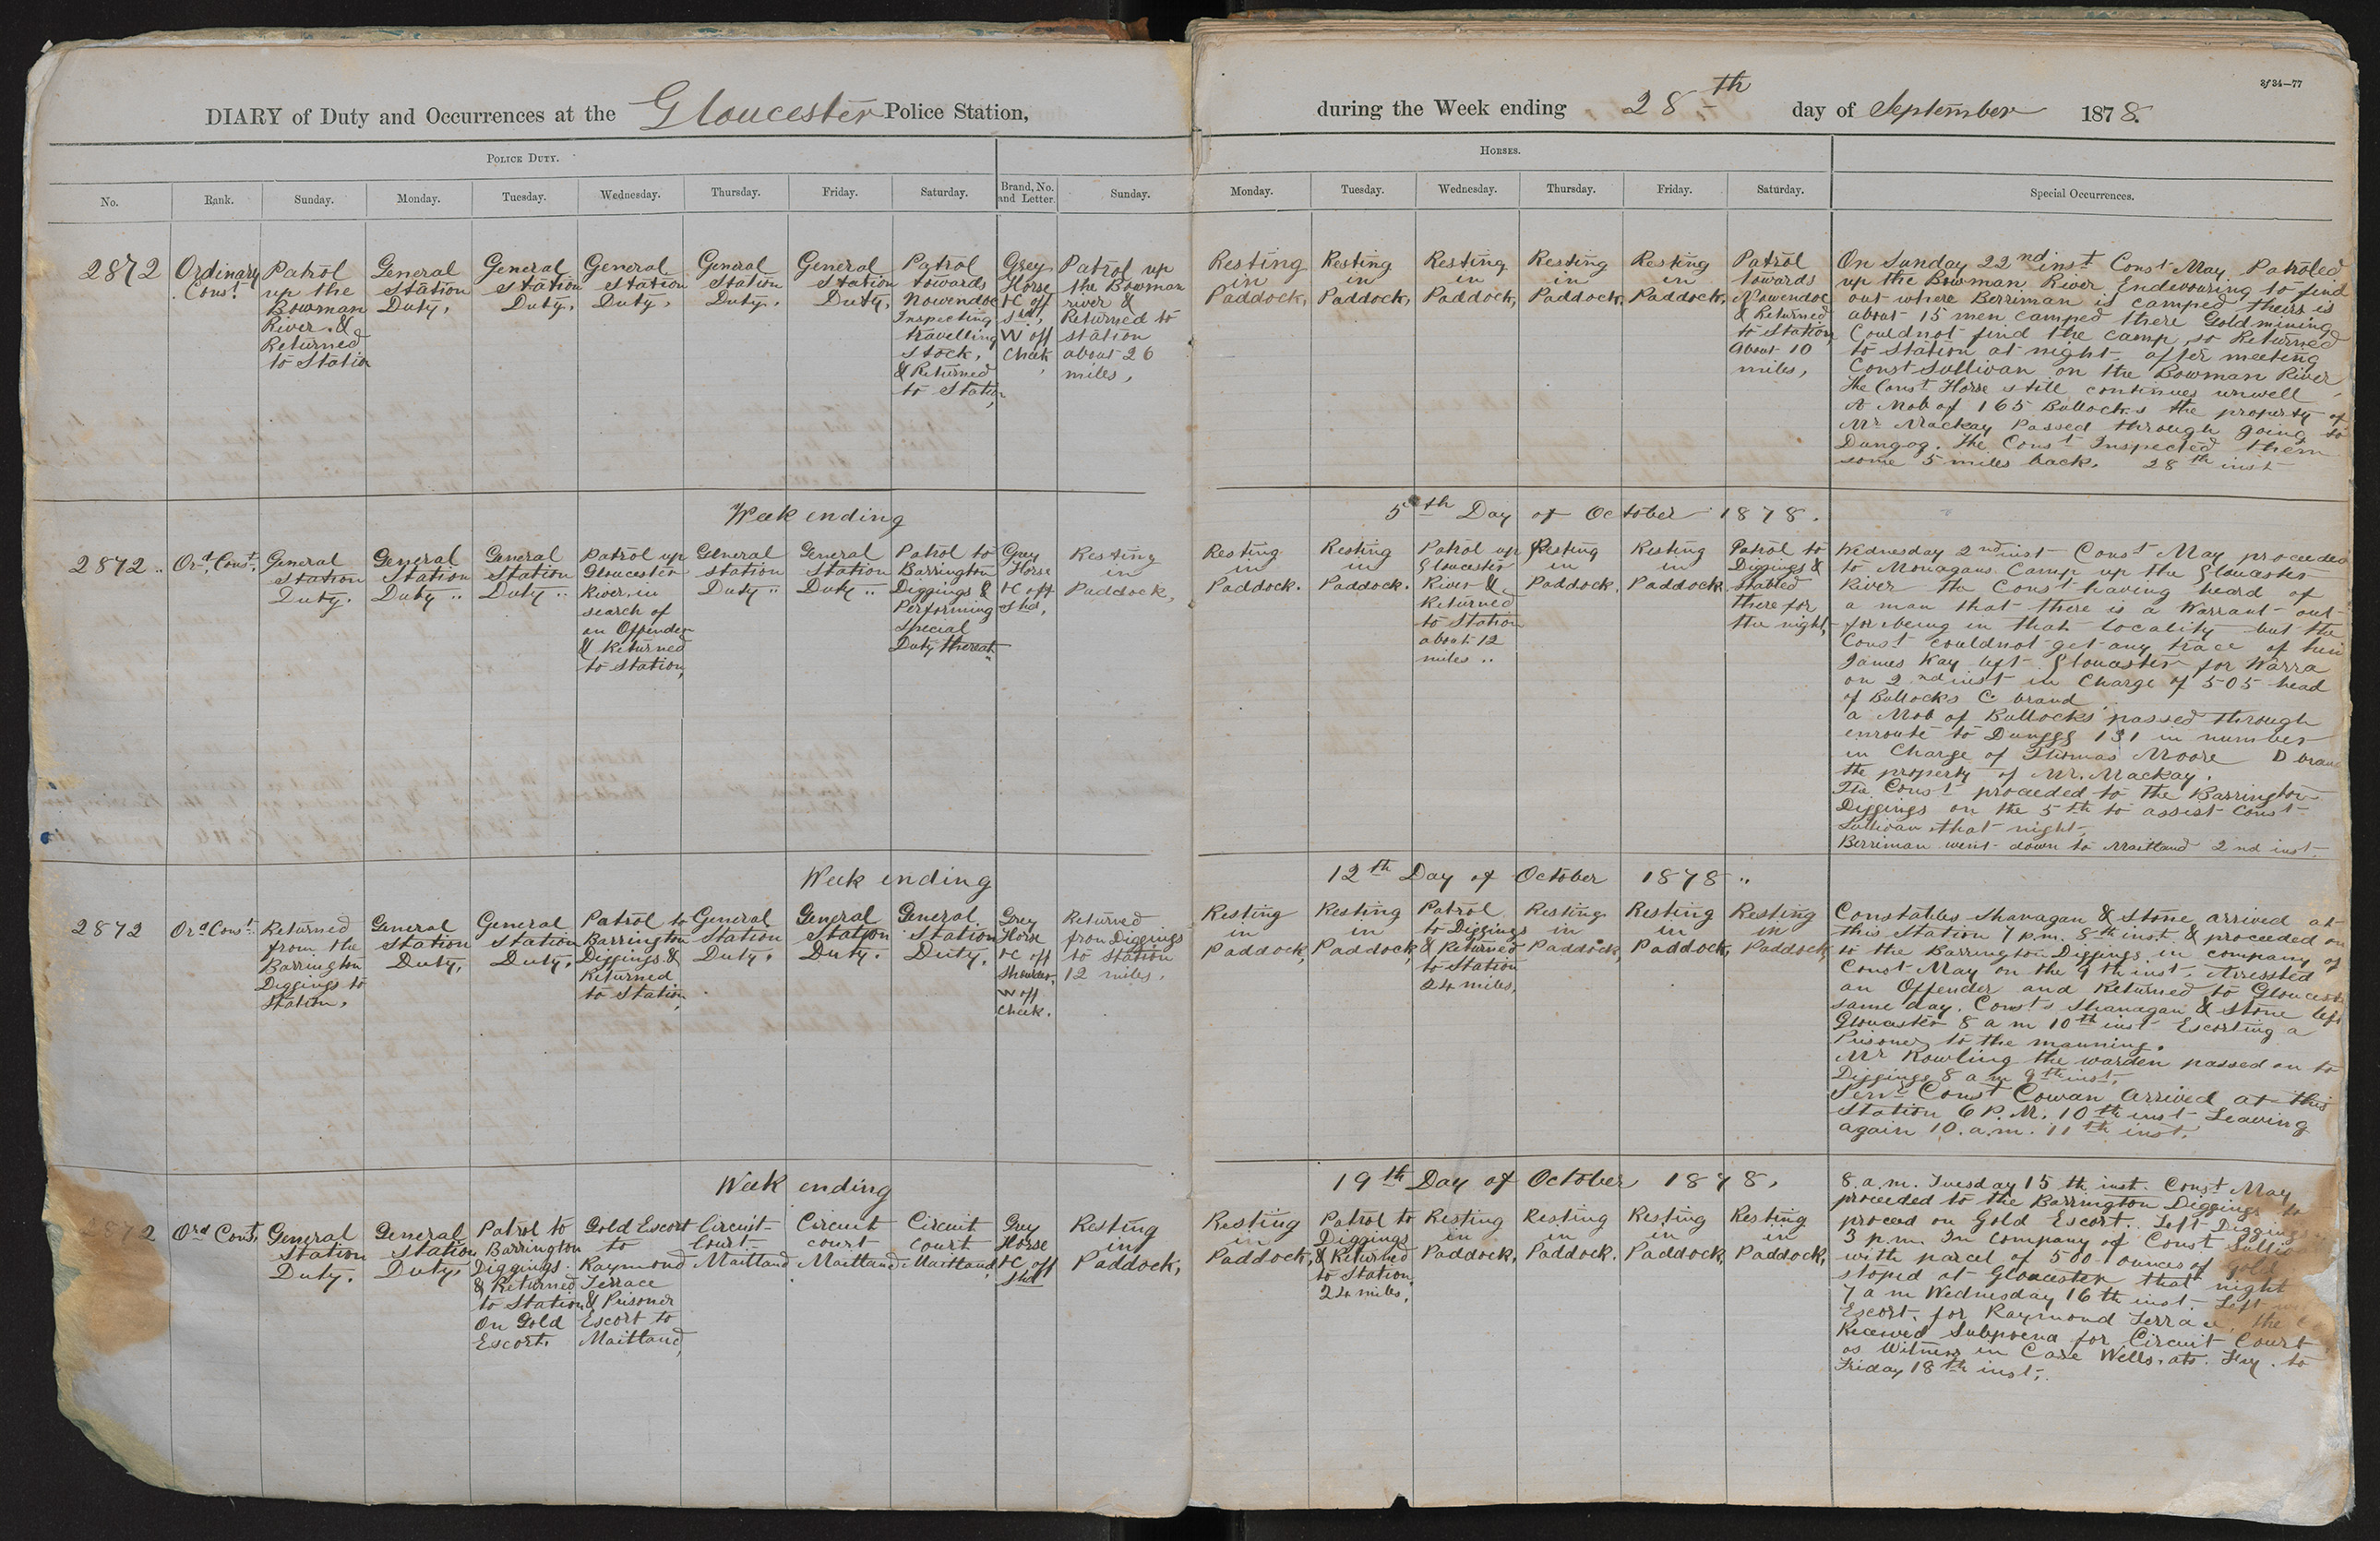 Diary of duty and occurrences at the Gloucester Police Station during the week ending the 28th day of September 1878